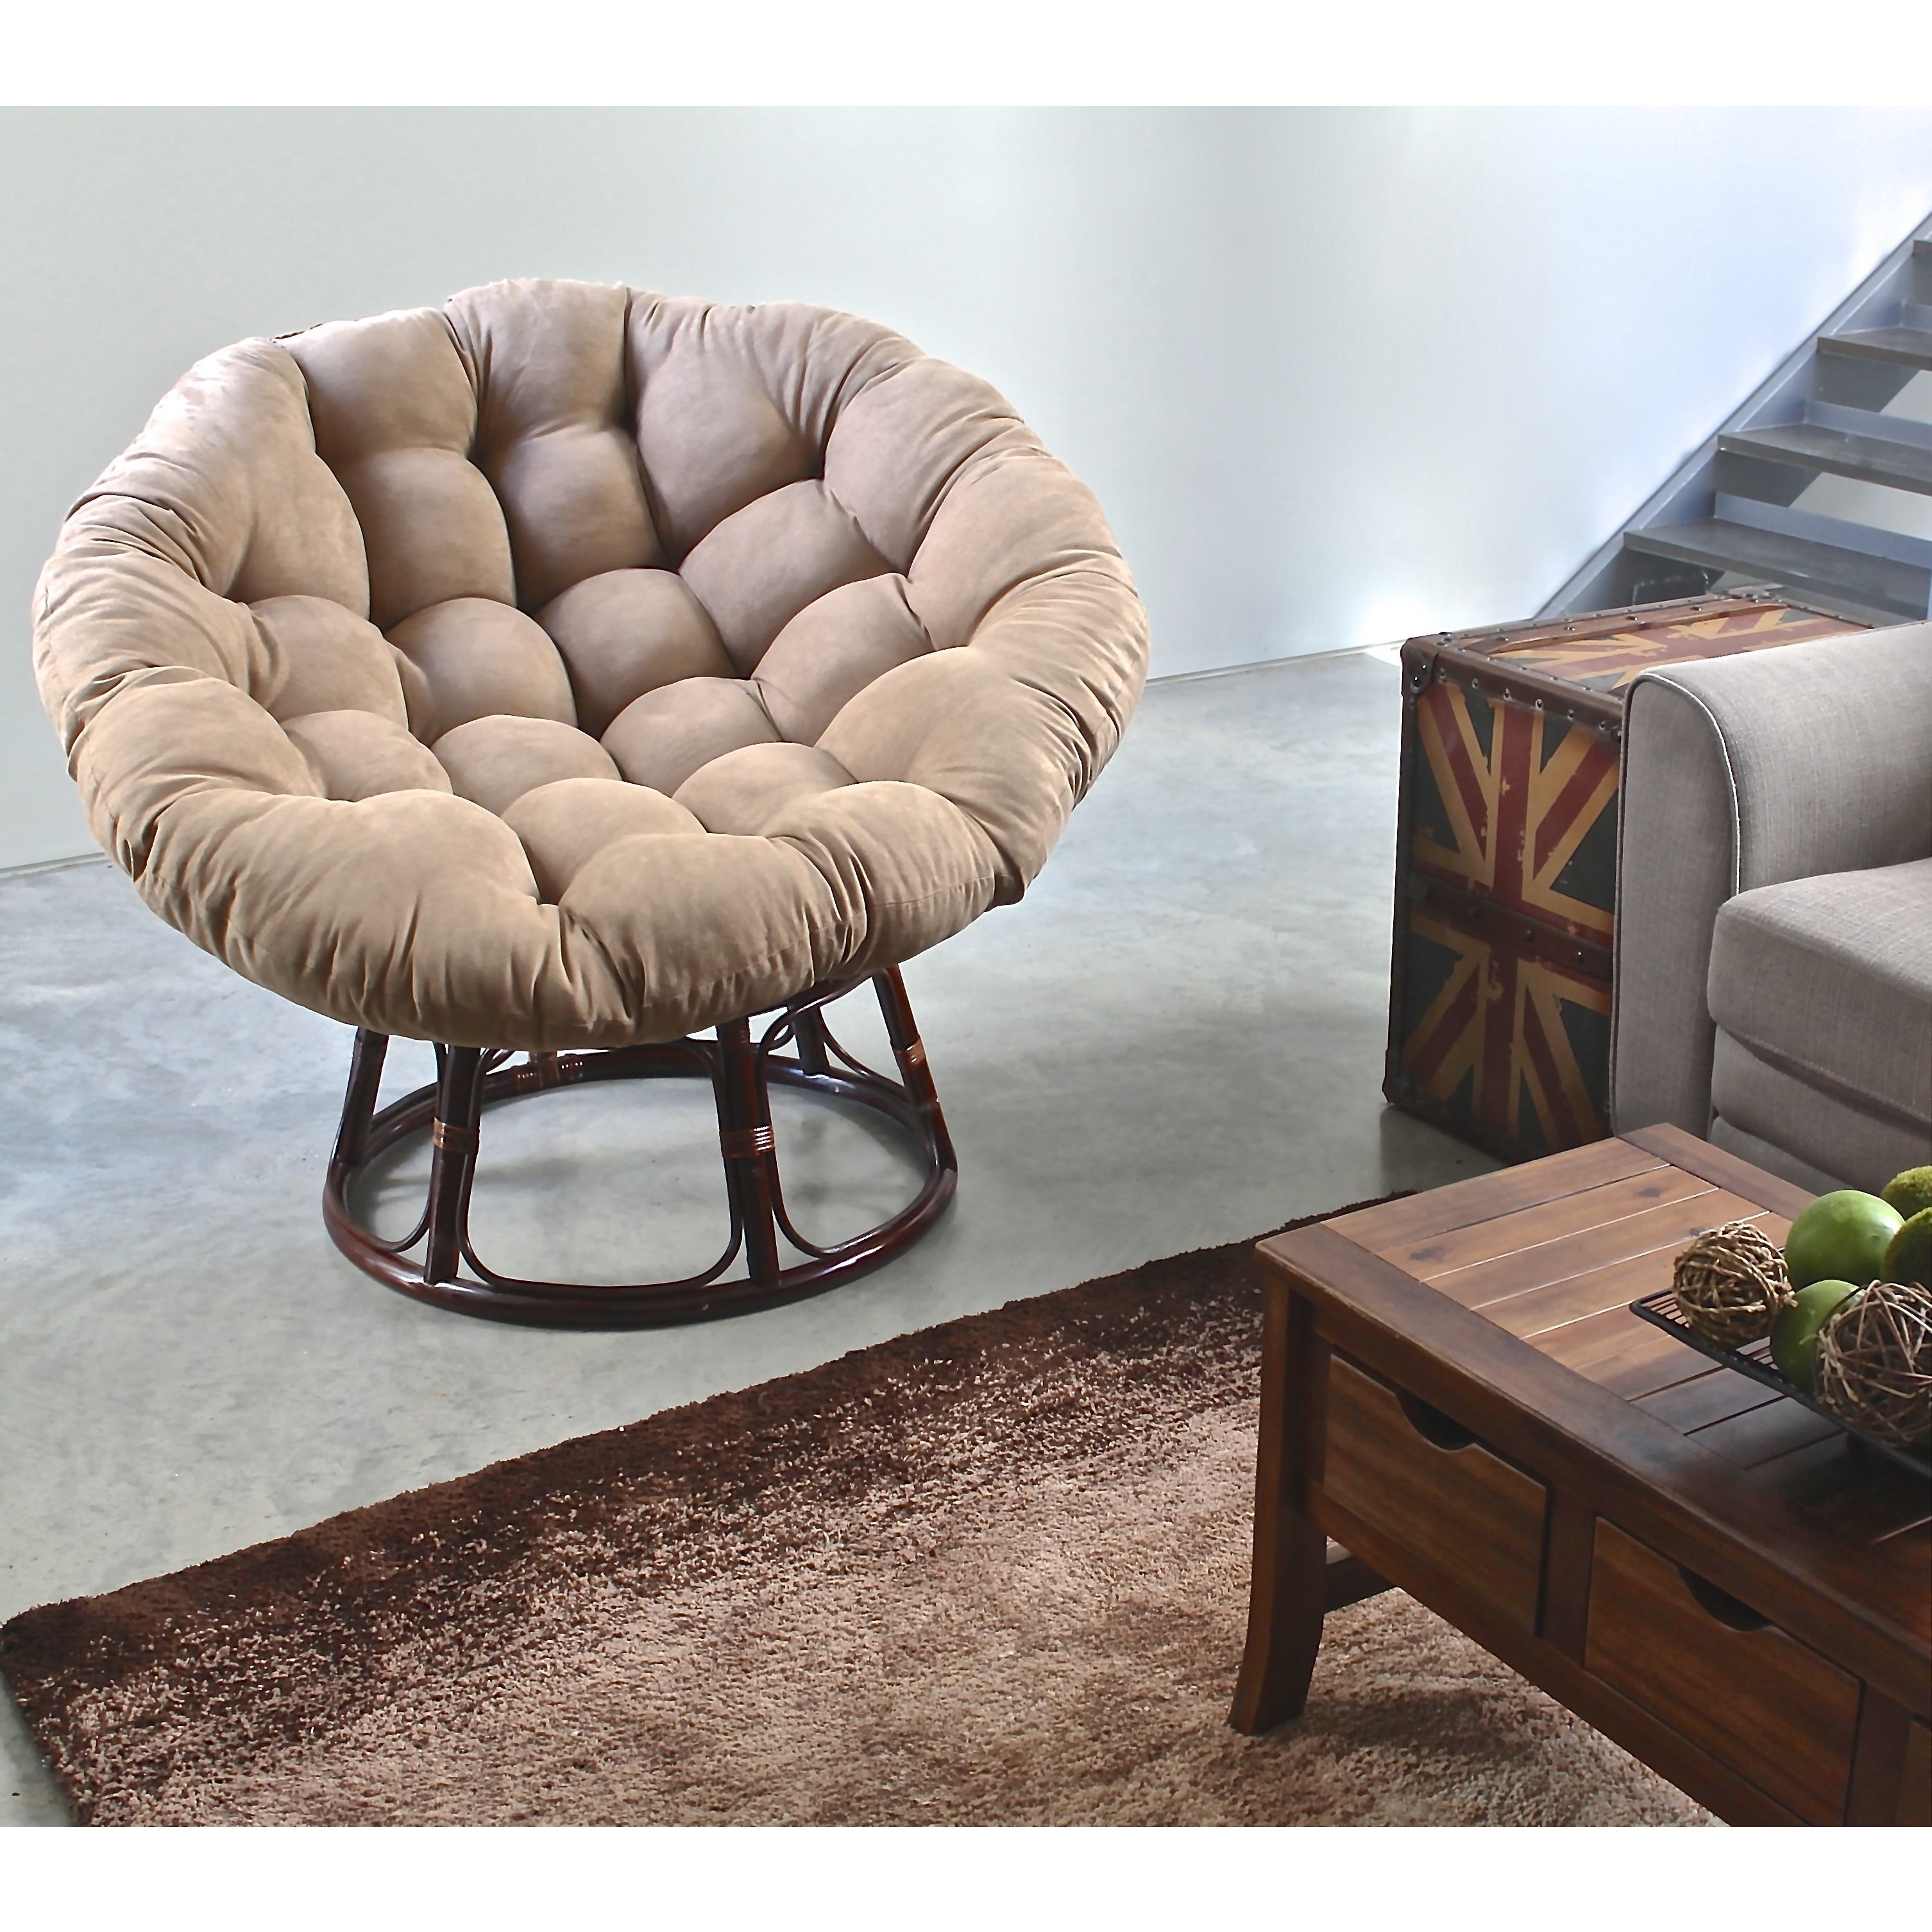 Widely Used Big Lots Chaises Inside Convertible Chair : Papasan Chair Metal Frame Fireplace Tv Stand (View 4 of 15)